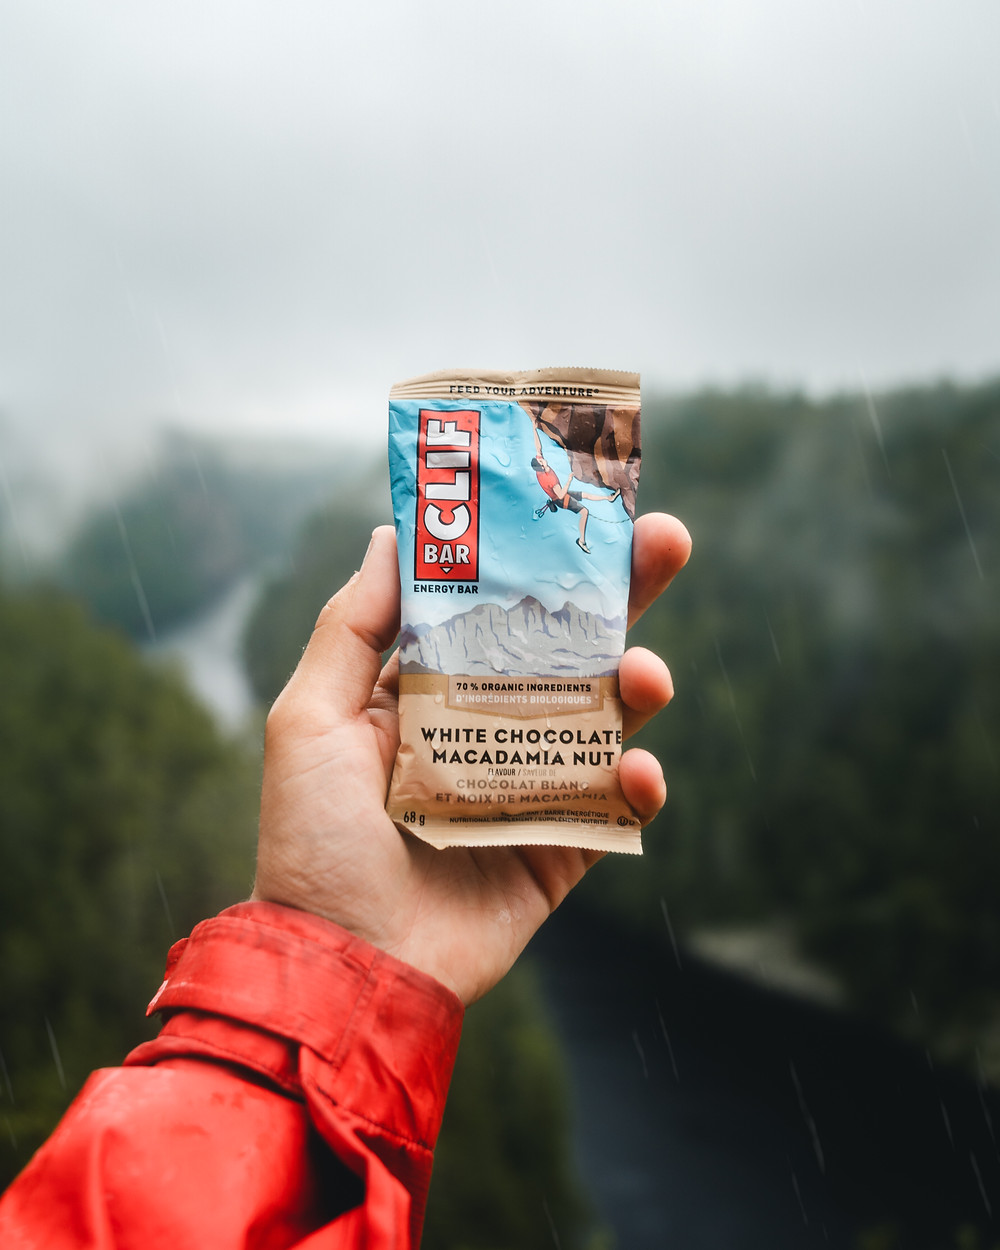 Clif bar energy barron canyon foggy mist raining camping backcountry Algonquin lifestyle photography michael frymus mfvisuals.ca